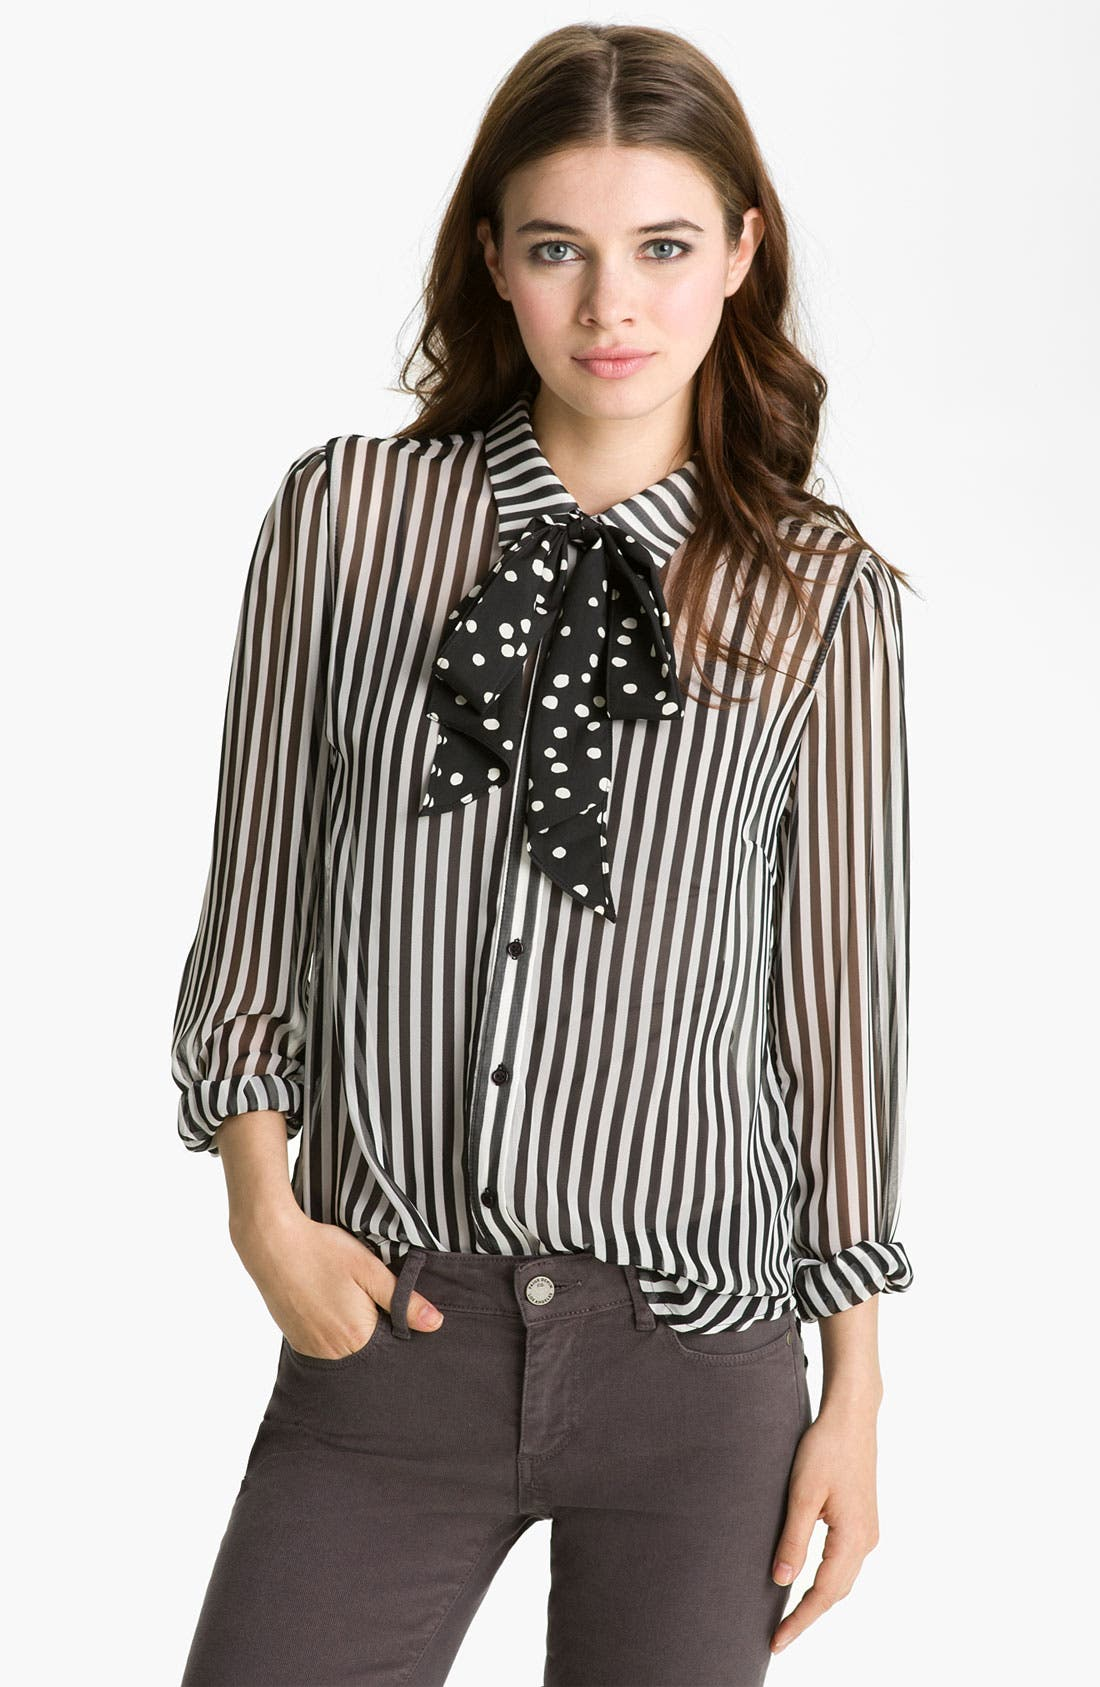 Alternate Image 1 Selected - Bellatrix Mix Print Tie Neck Shirt